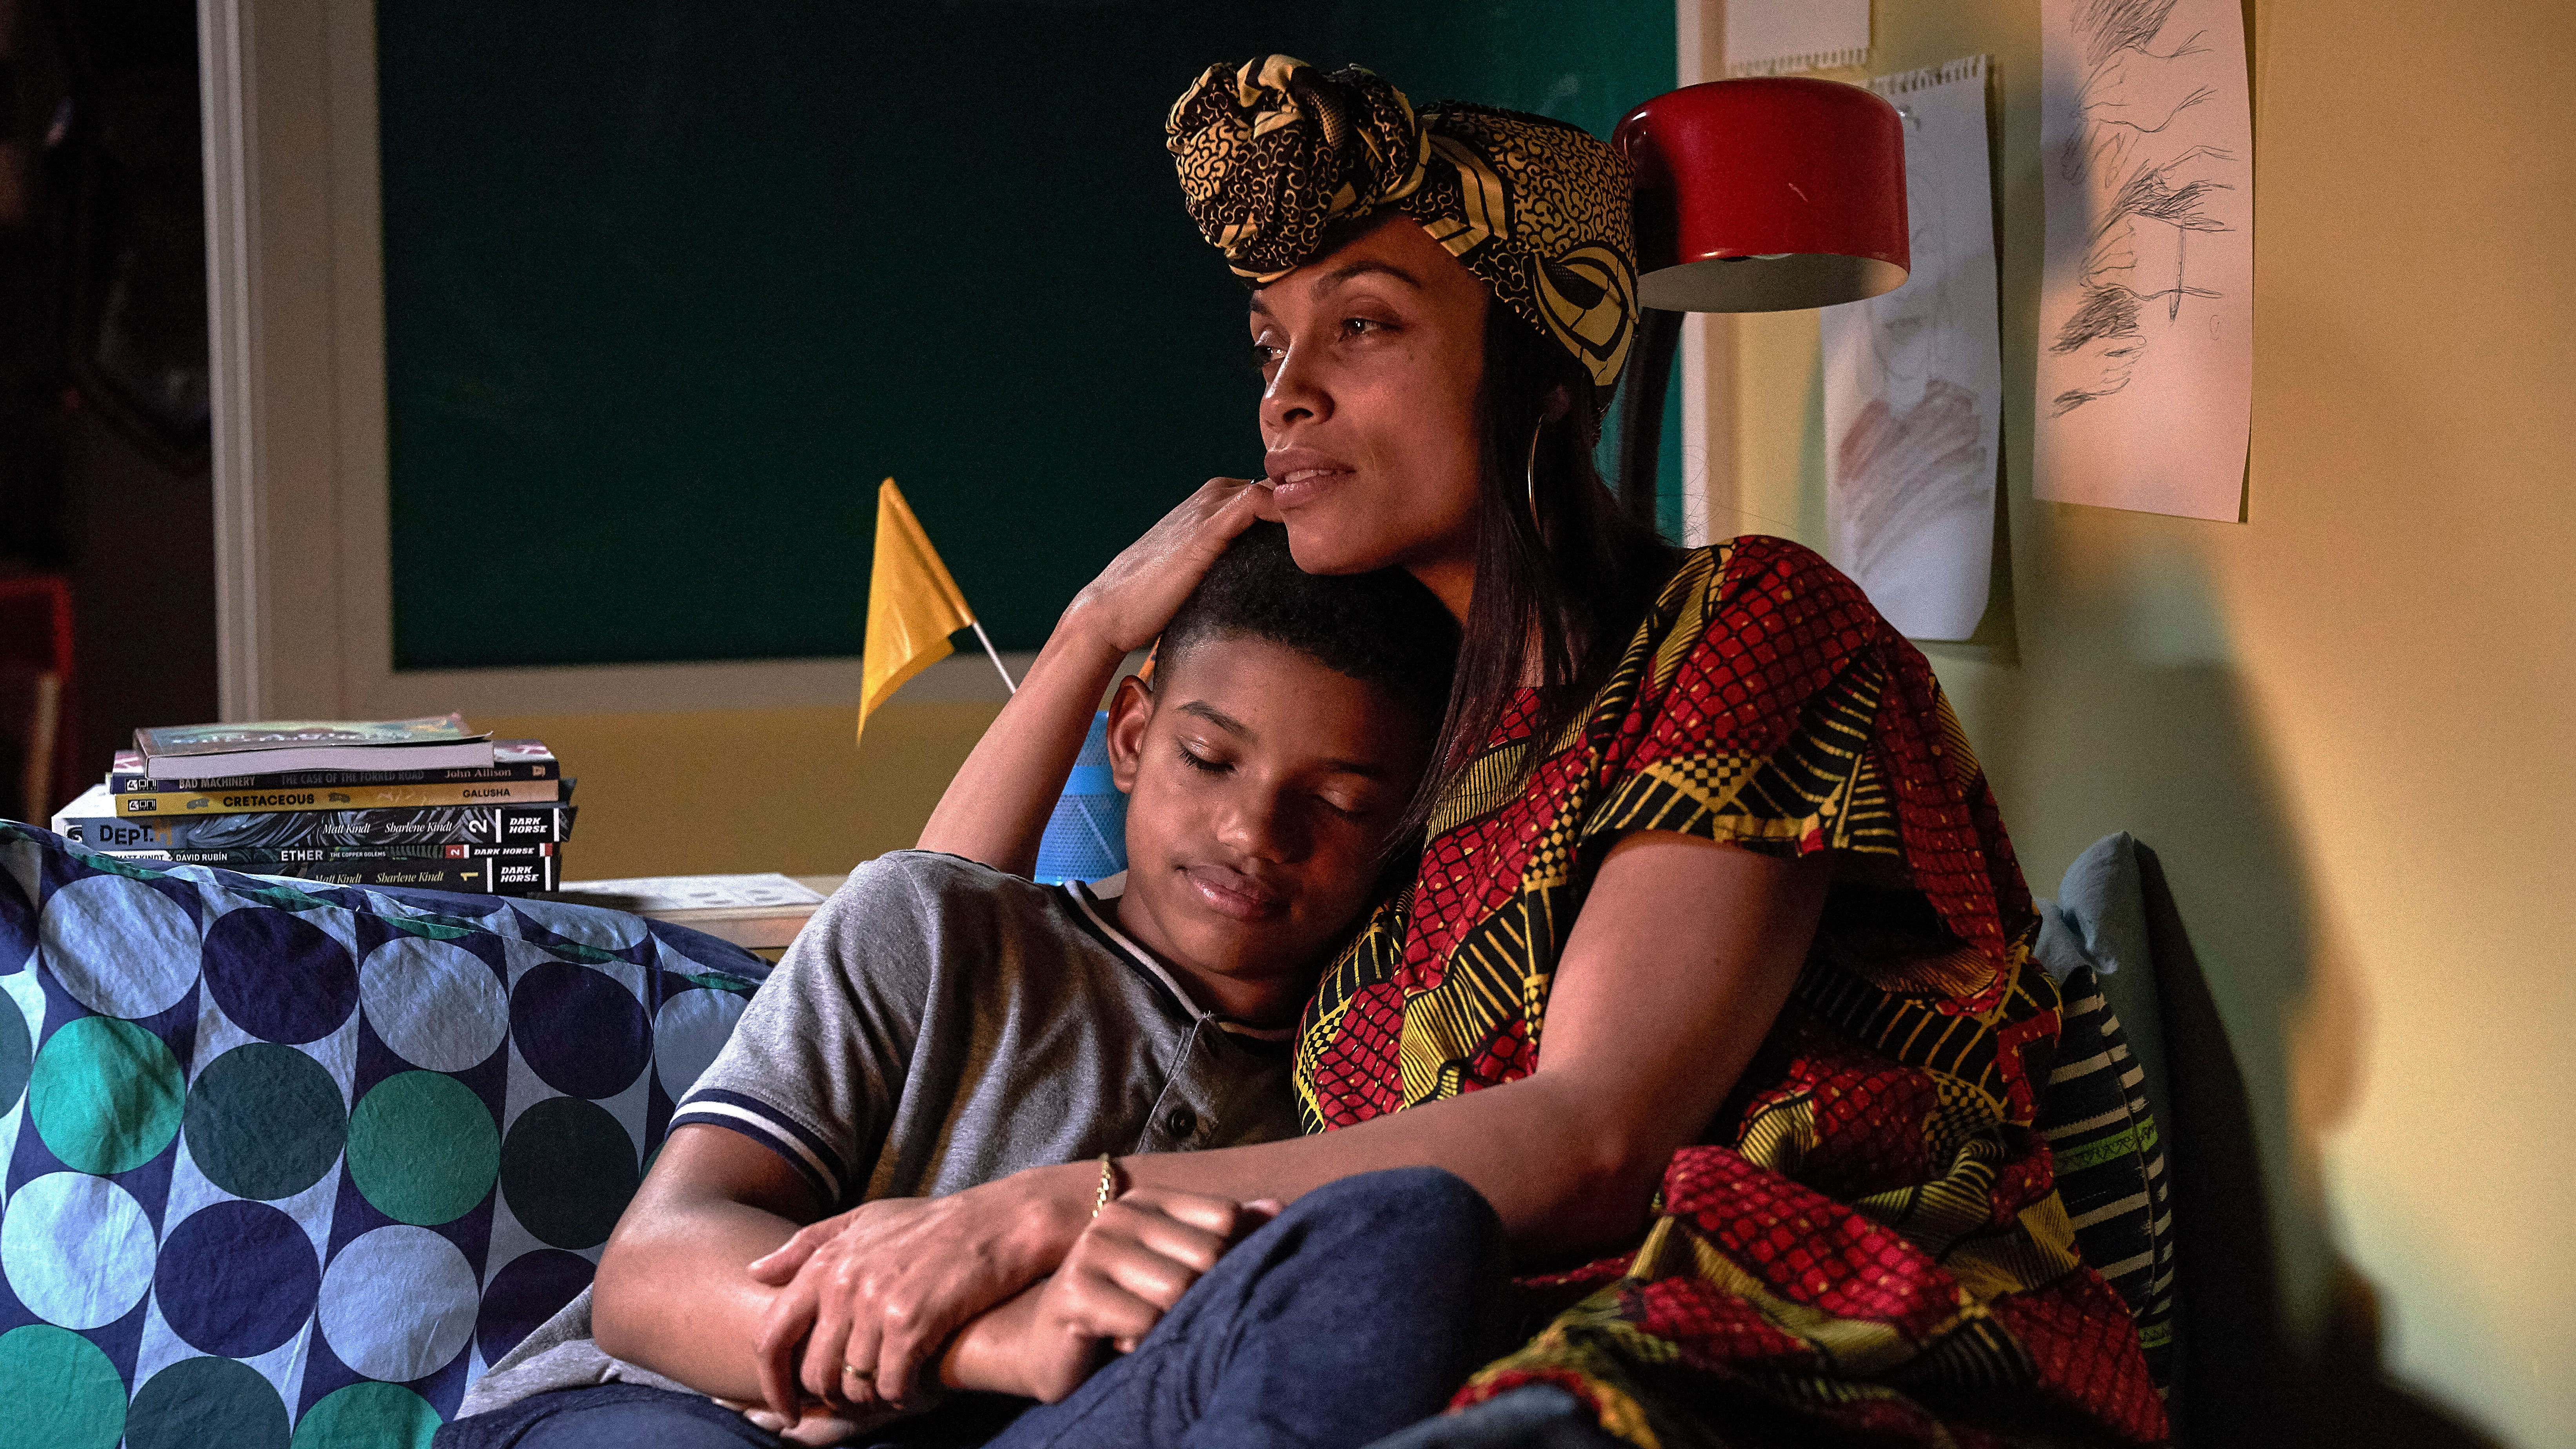 The Water Man' Rosario Dawson on father's cancer, Cory Booker move